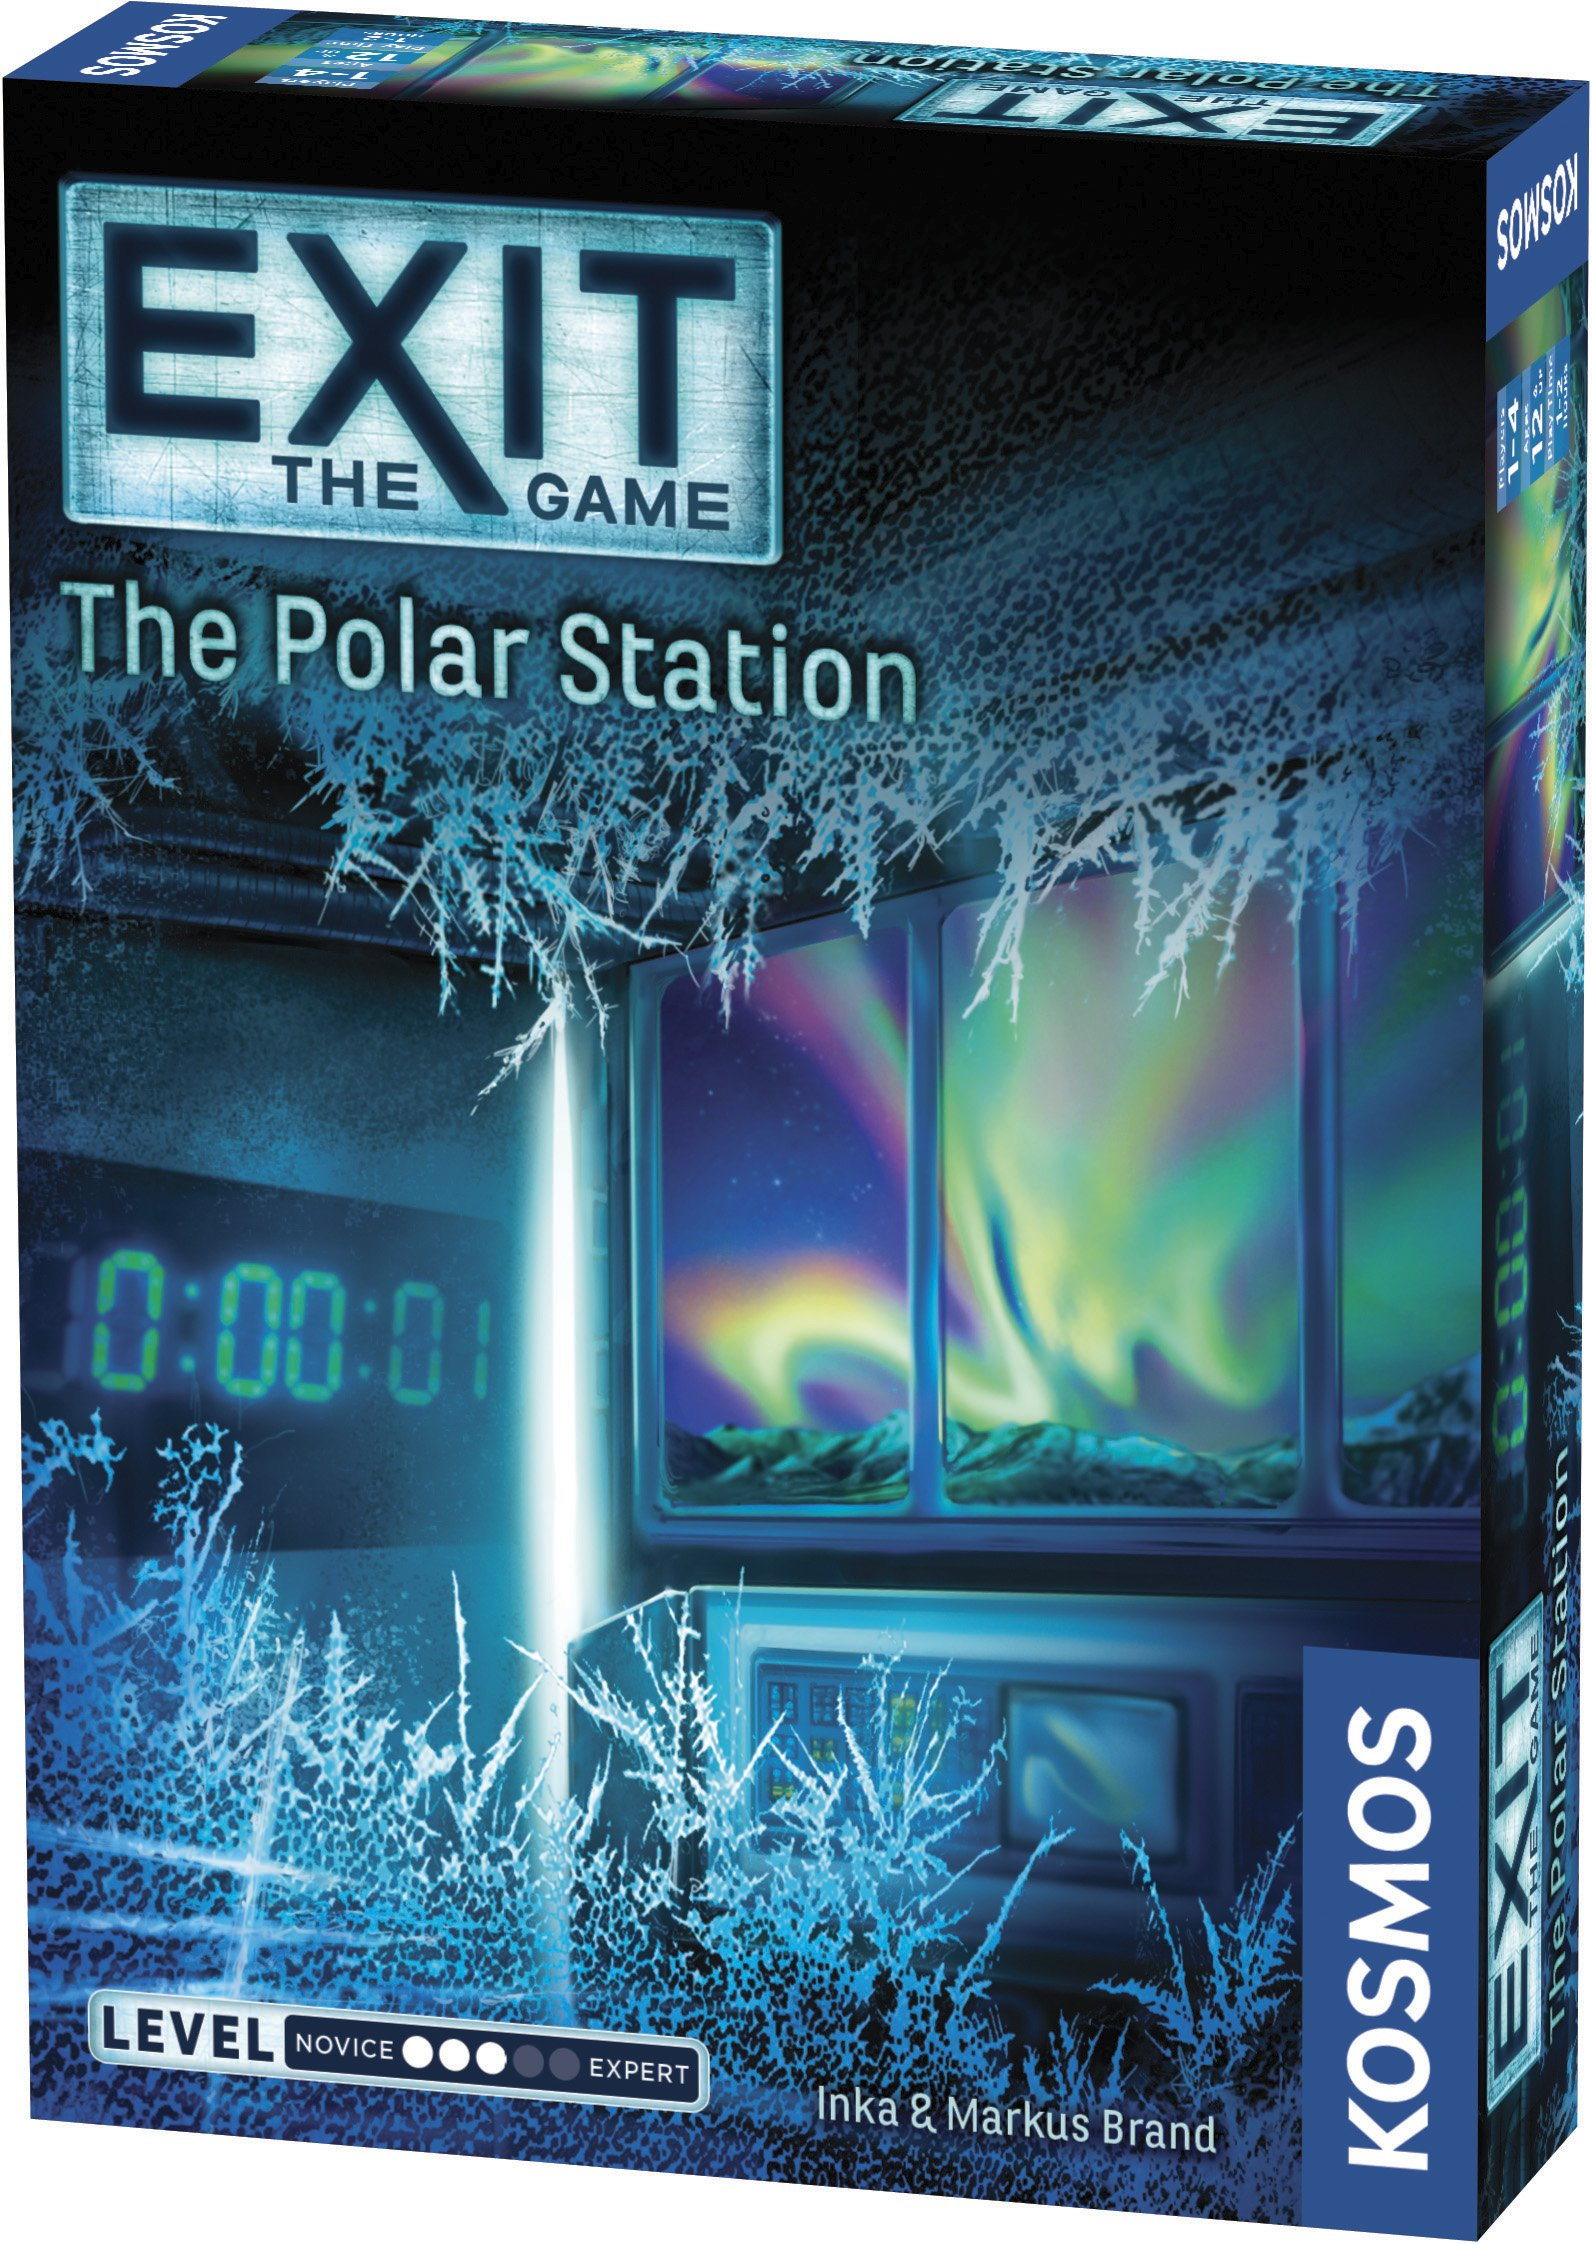 Exit: The Polar Station | Escape Room Game | Exit: The Game - A Kosmos Game | Family-Friendly, Card-Based at-Home Escape Room Experience for 1 to 4 Players, Ages 12+